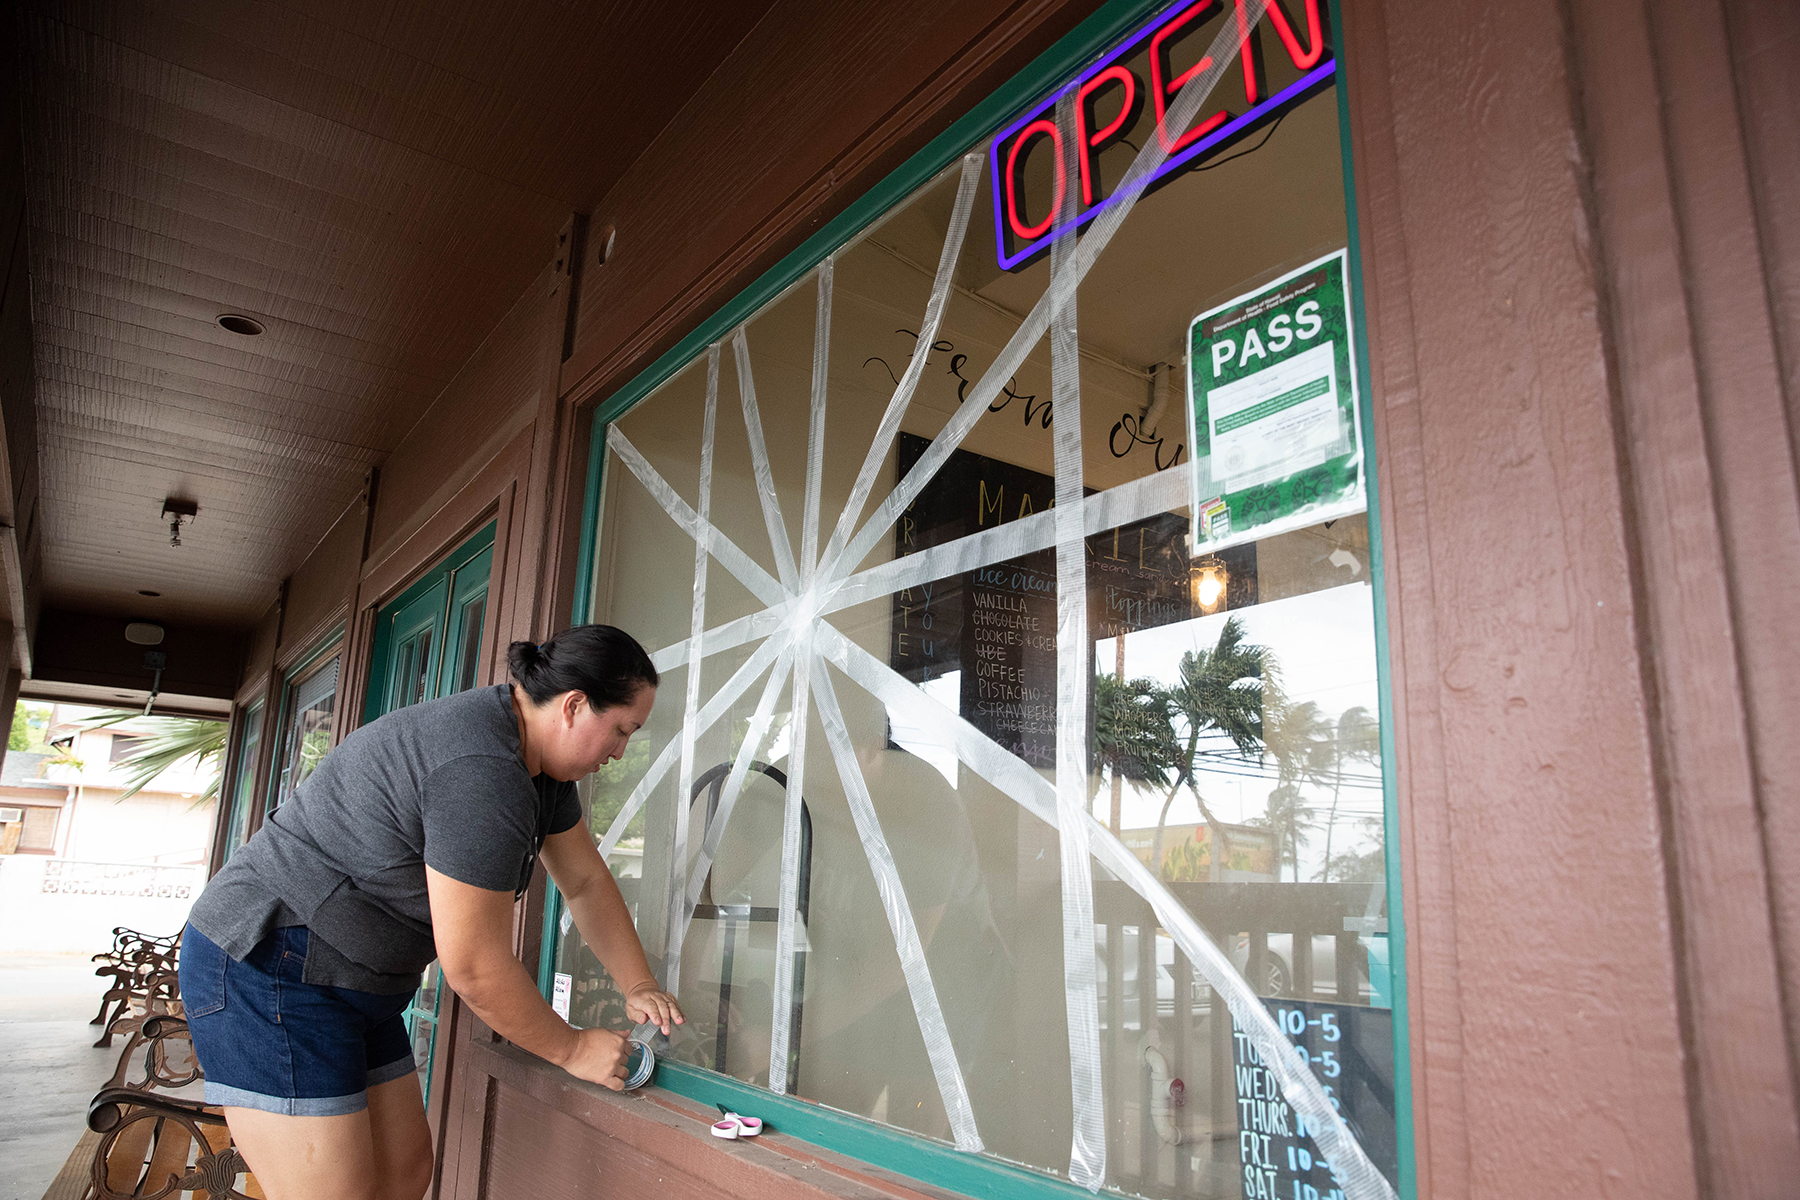 <p>There are different theories about how to prevent windows from breaking in a windstorm. Shivon Lave chose the tape option for her bakery in Maili. Photograph by Anthony Quintano/Civil Beat</p>